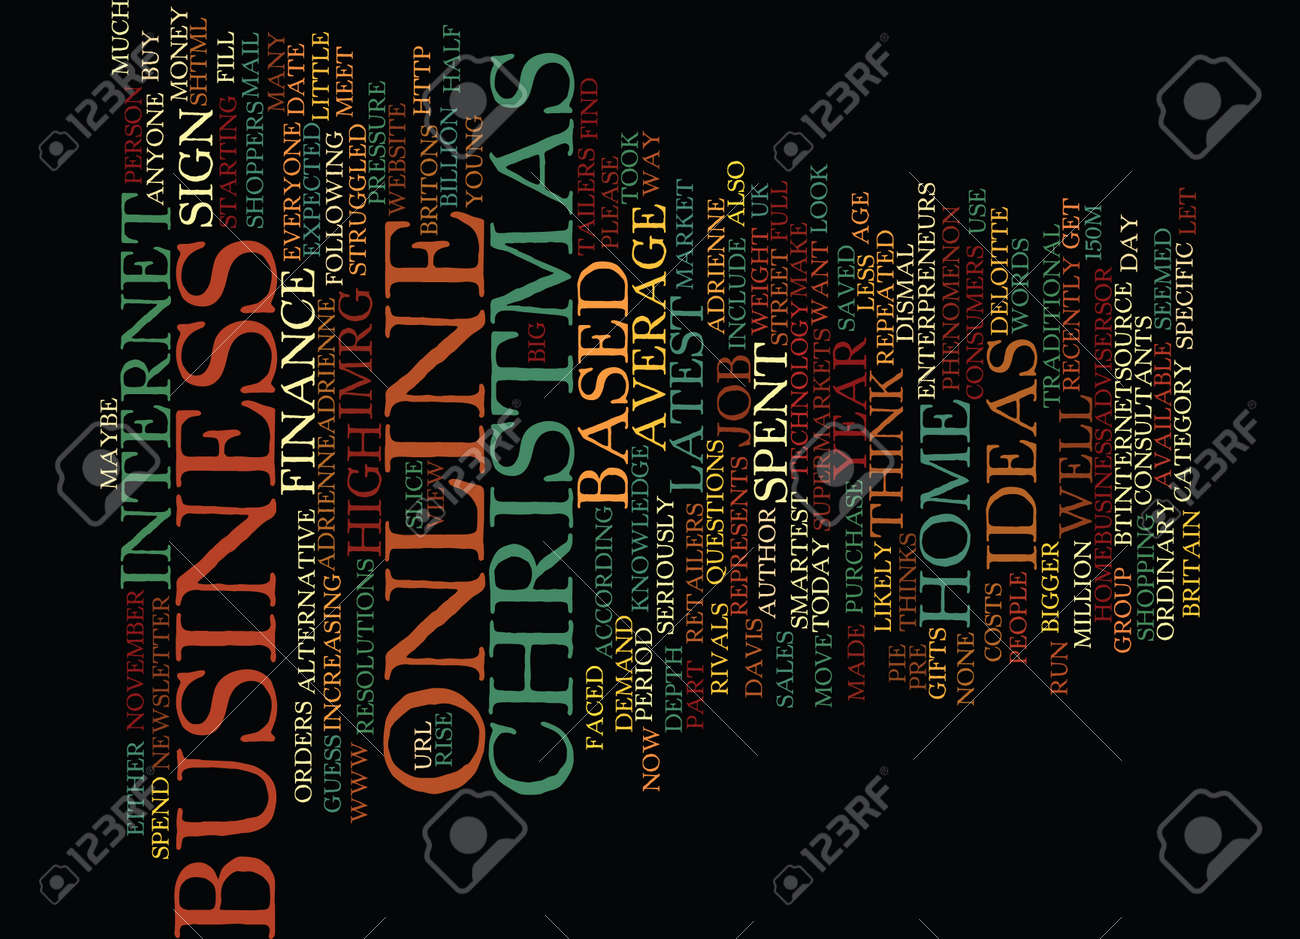 latest home based business ideas for text background word cloud